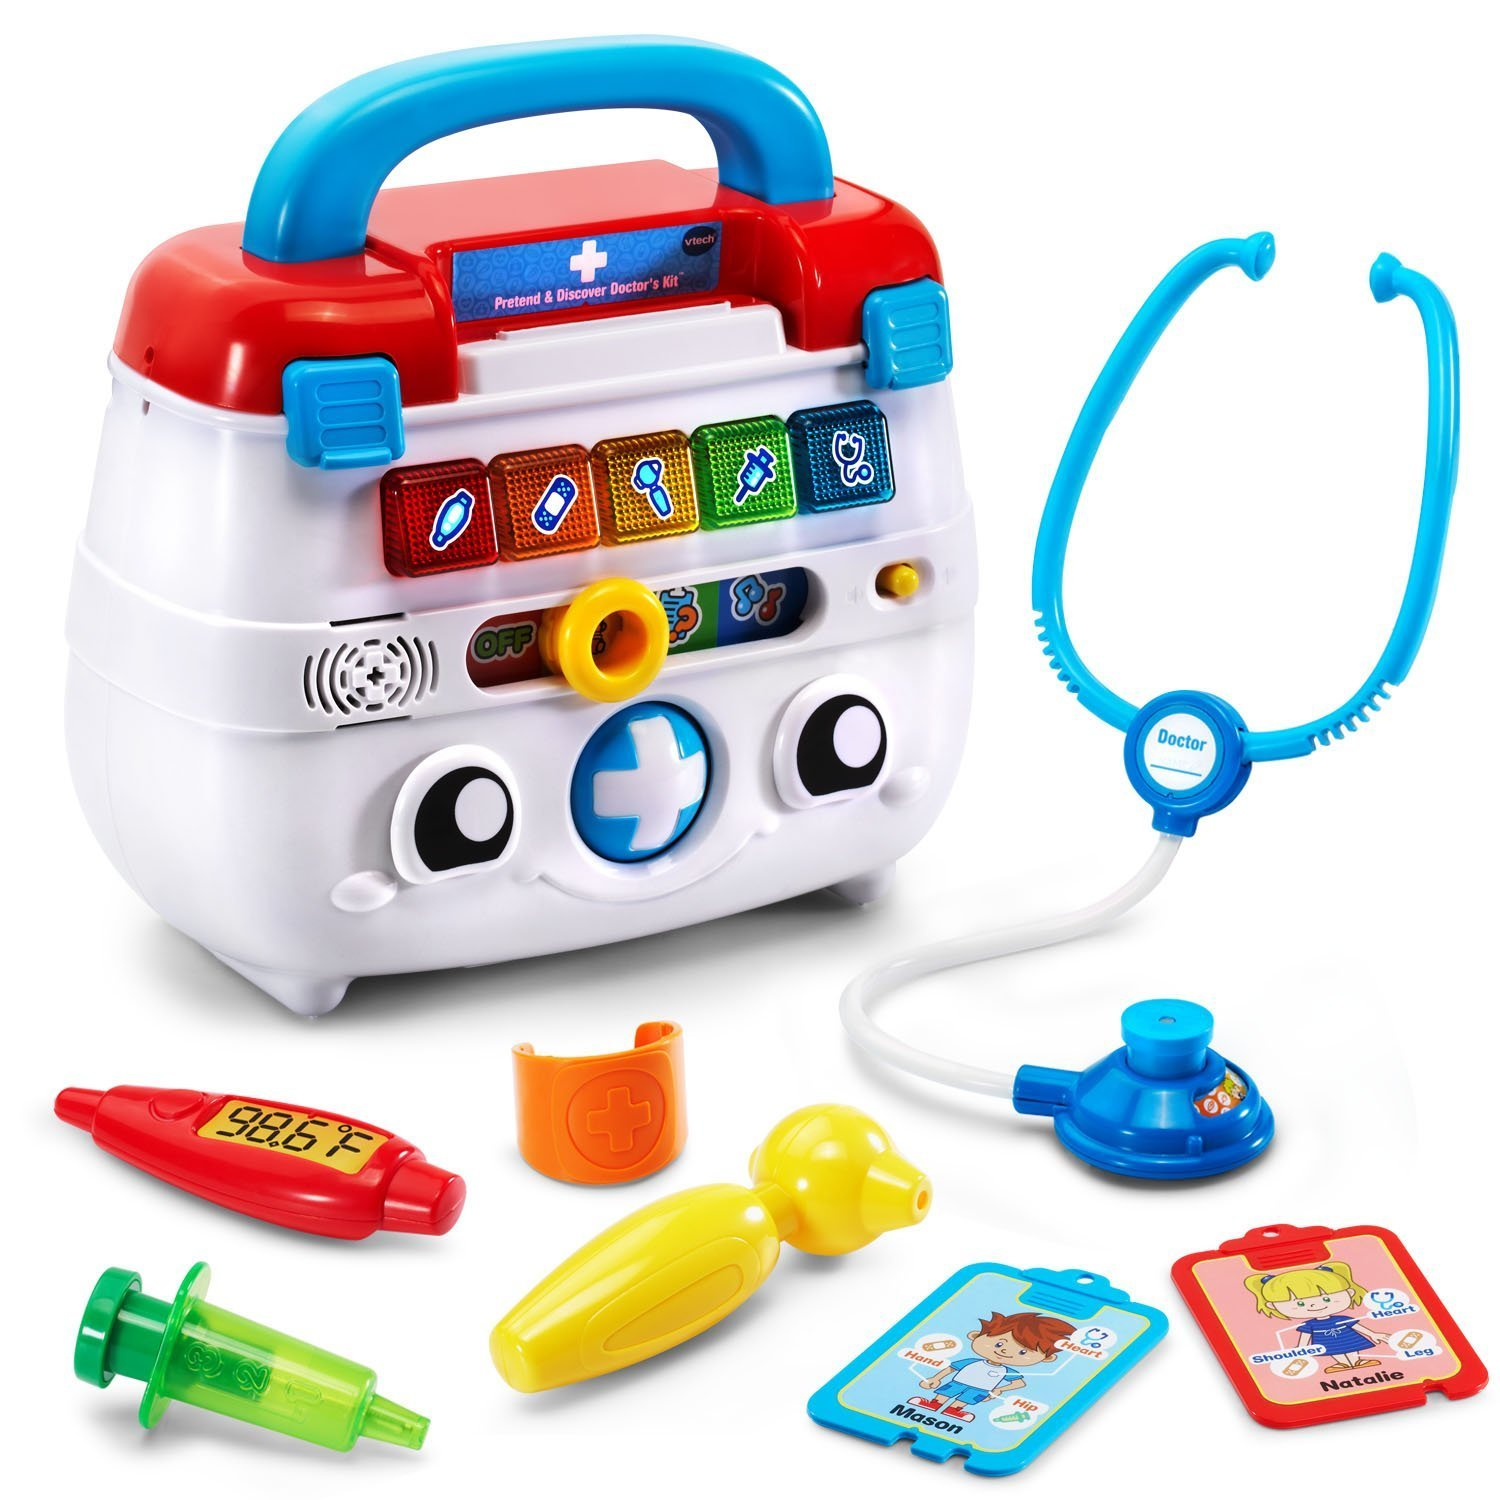 Pretend and Discover Doctor's Kit, USA, Brand VTech by